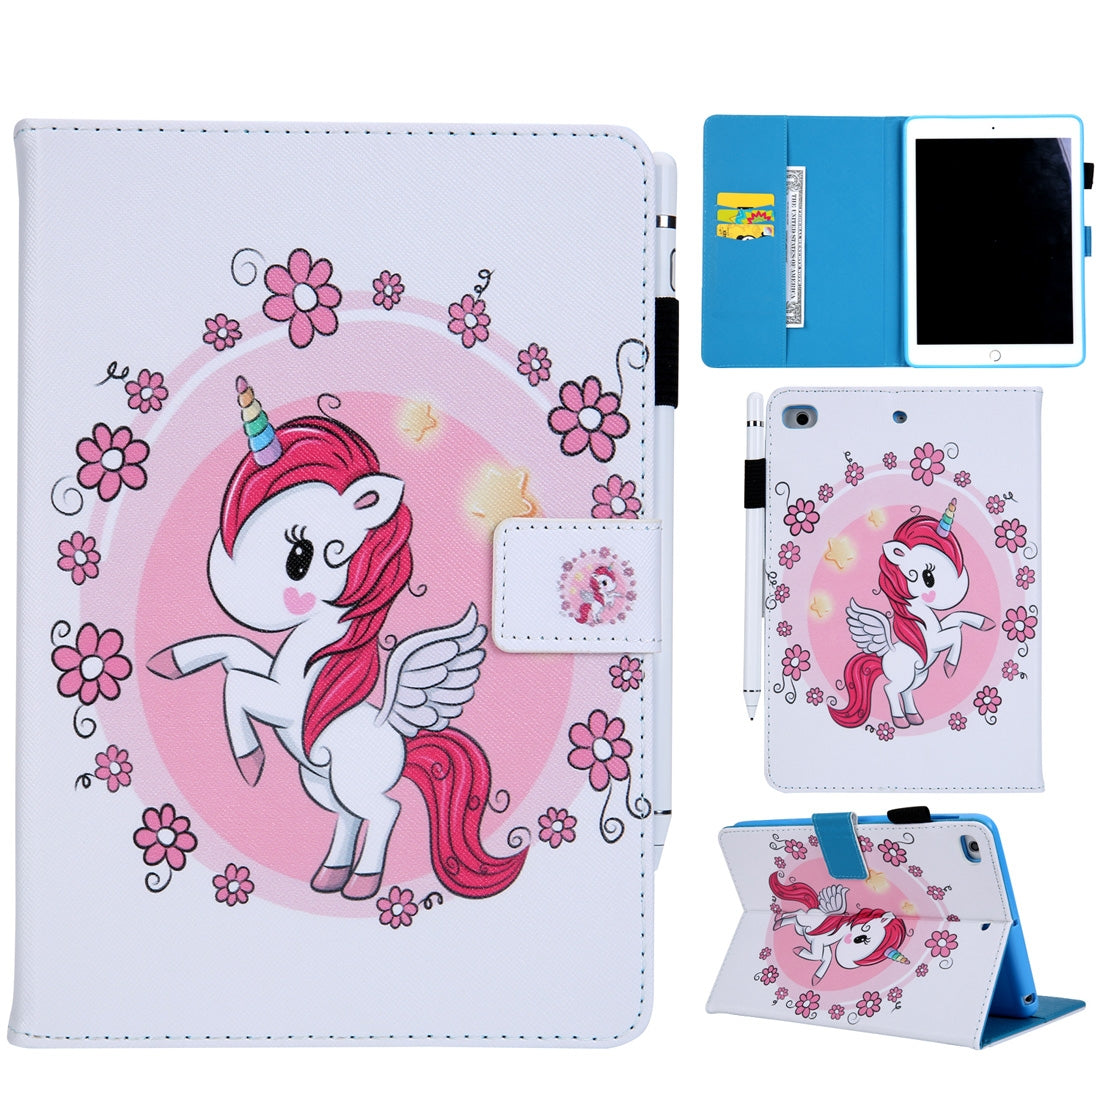 Unicorn Pattern Horizontal Flip Leather Case for iPad mini 4 & 3 & 2 & 1, with Holder & Card Slot & Wallet